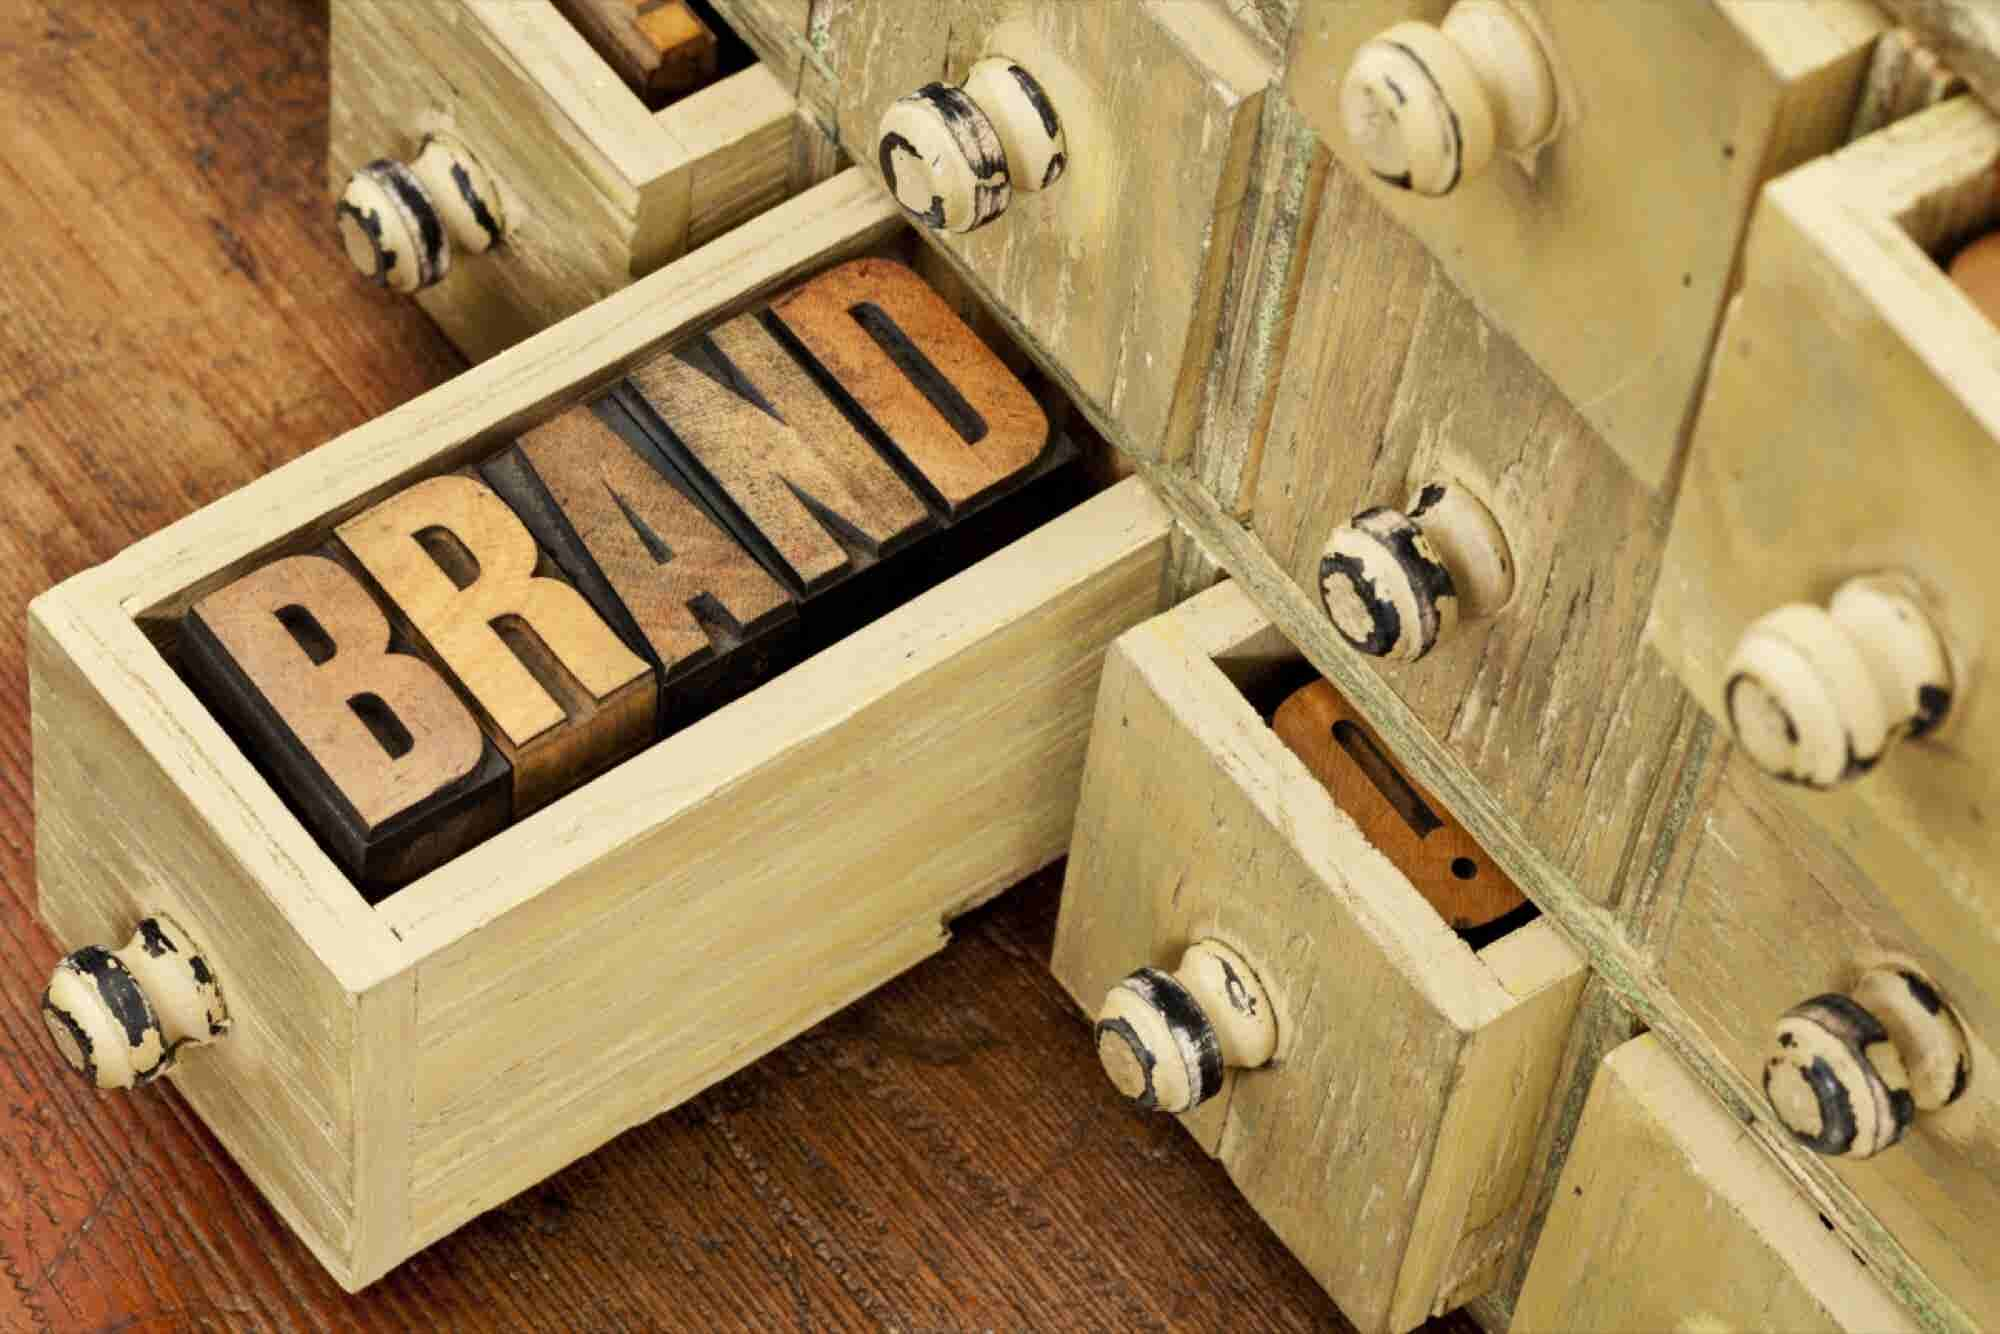 Your Business Brand Is An Extension Of Your Personal Brand